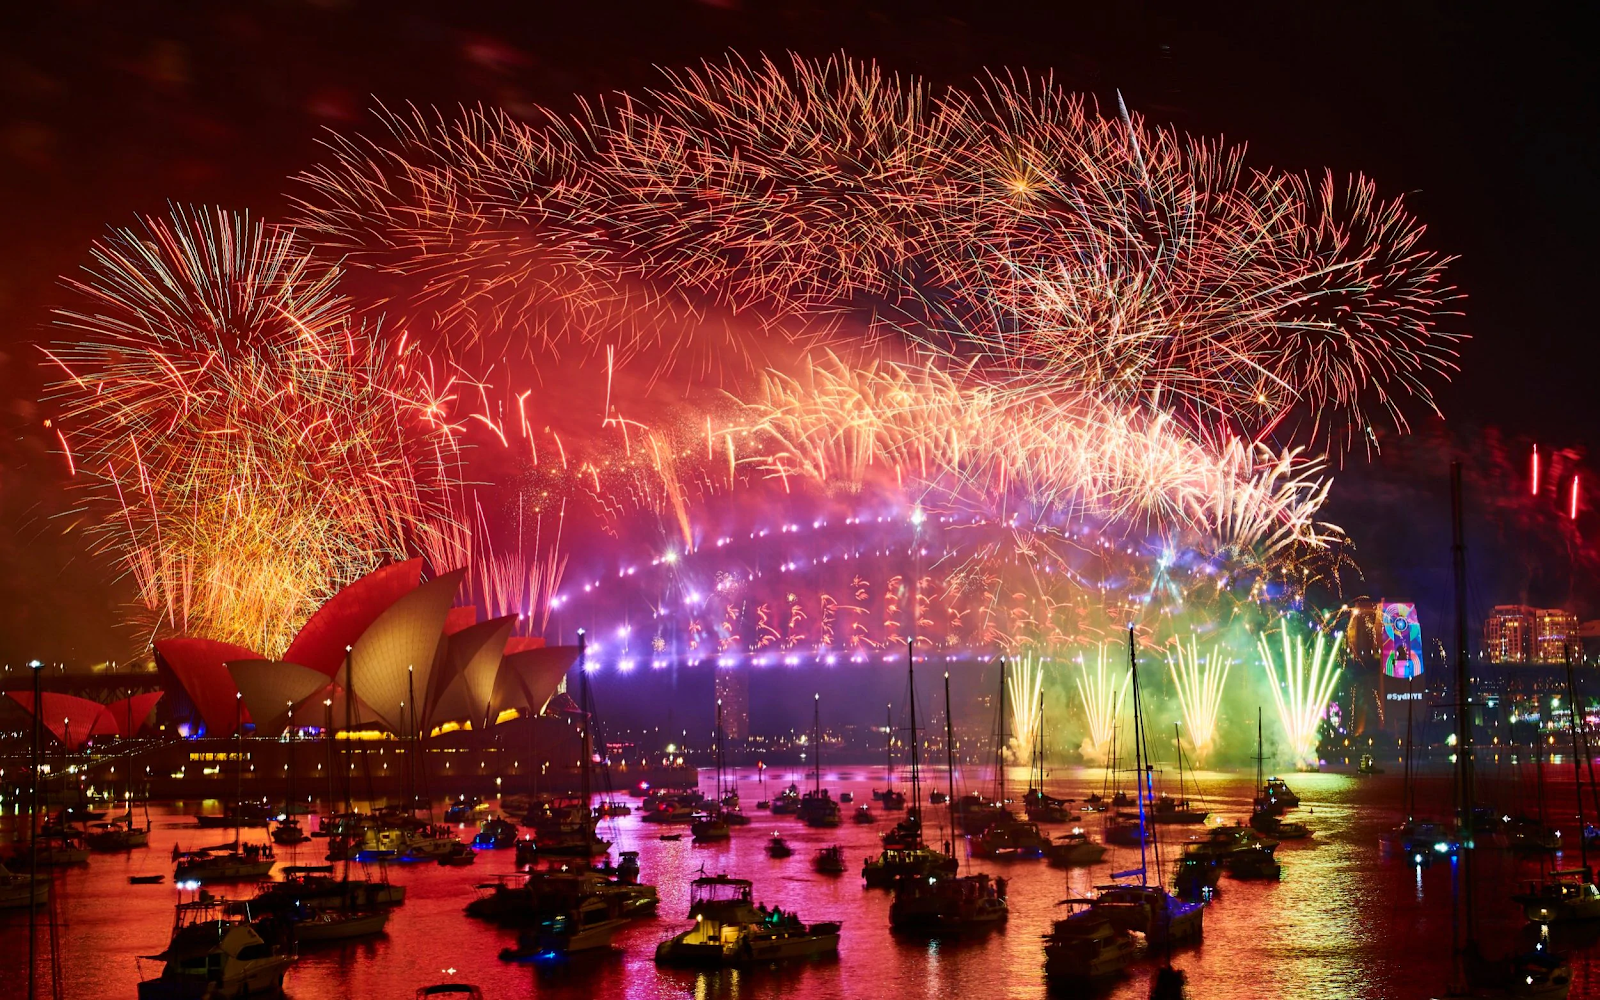 Sydney - the city of celebration